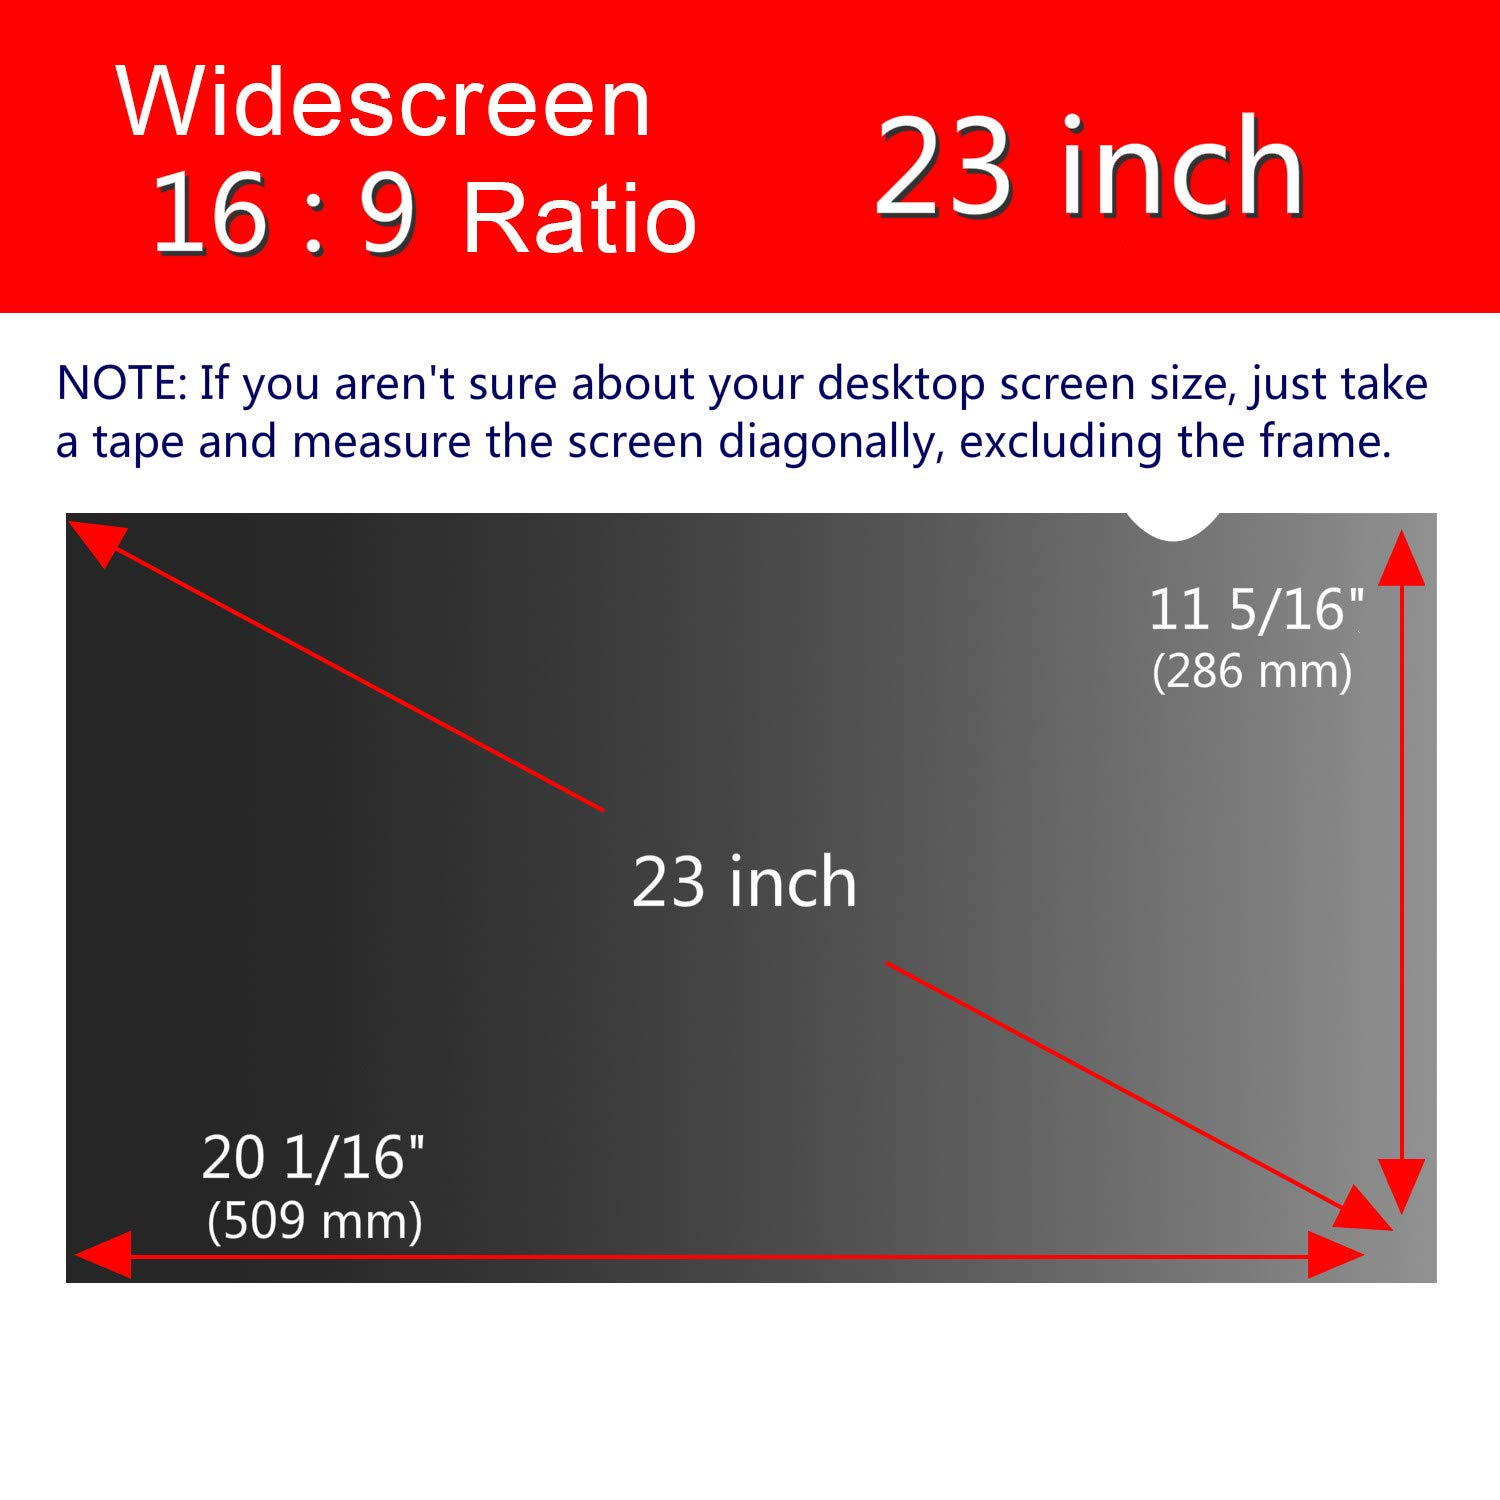 Magicmoon Privacy Filter Screen Protector, Anti-Spy&Glare Film for 23 inch Widescreen Computer Monitor (23'', 16:9 Aspect Ratio) by Magicmoon (Image #7)